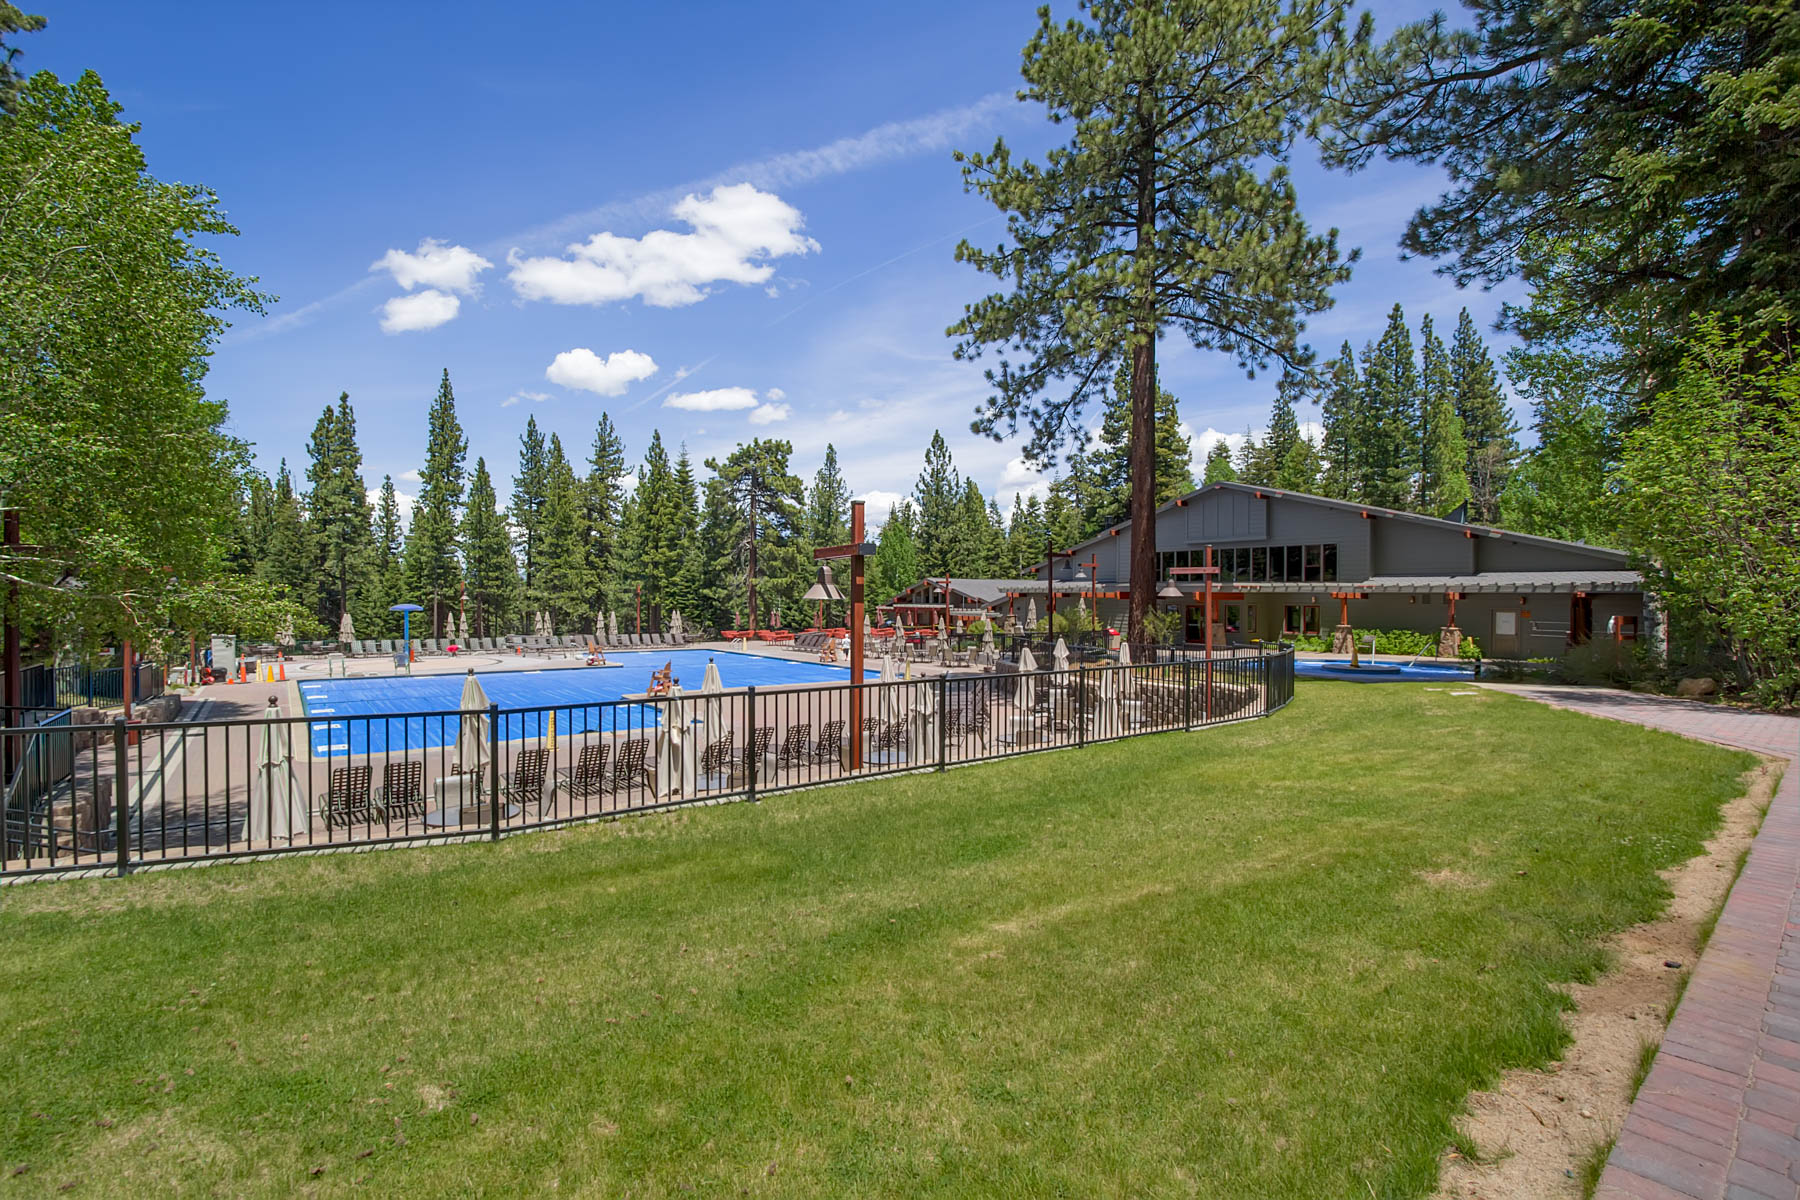 Additional photo for property listing at 235 Basque Drive,  Truckee CA 96161 235 Basque Drive Truckee, California 96161 United States